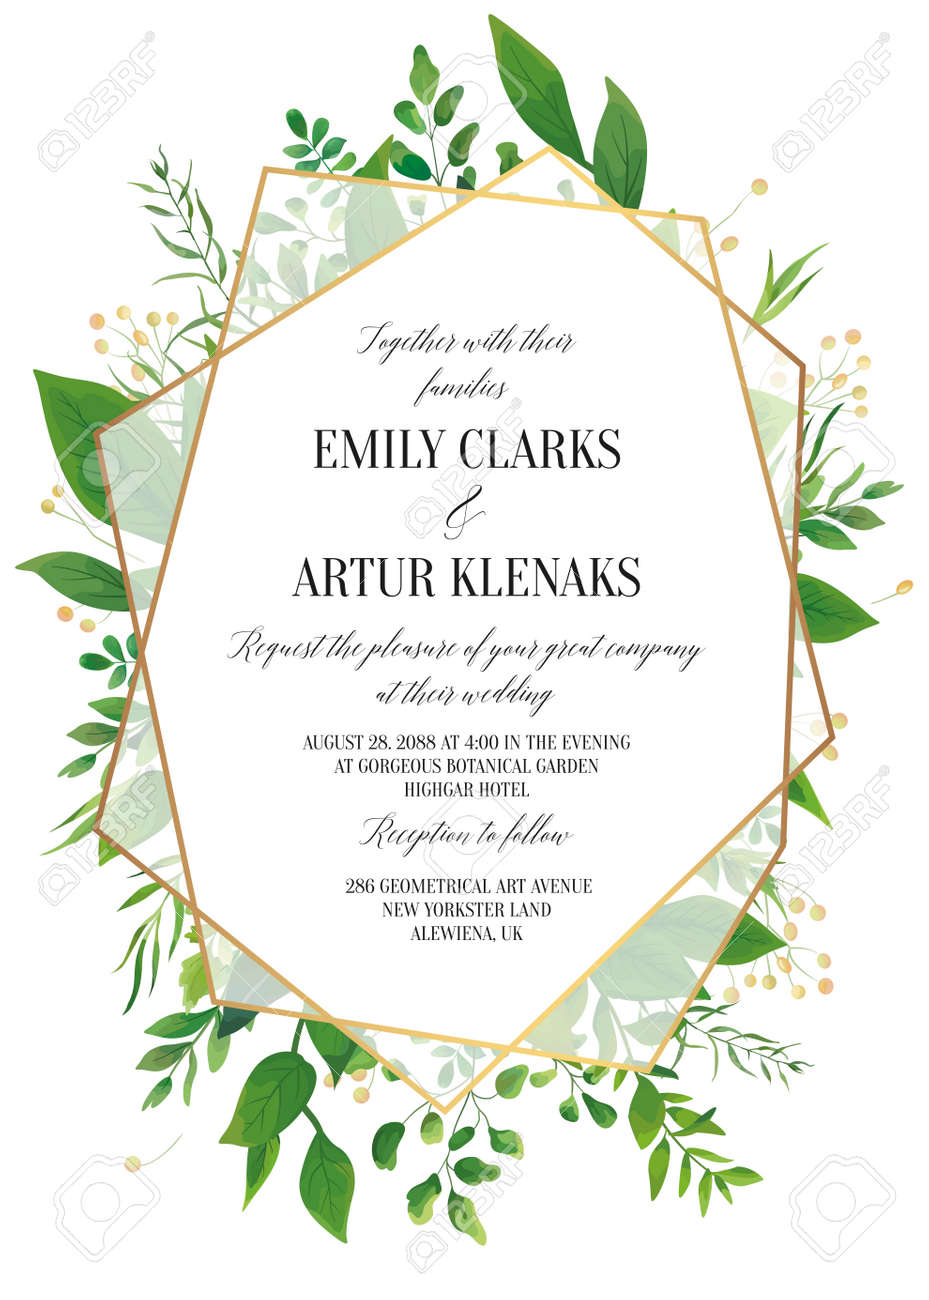 Wedding Invitation Floral Invite Save The Date Modern Card Design